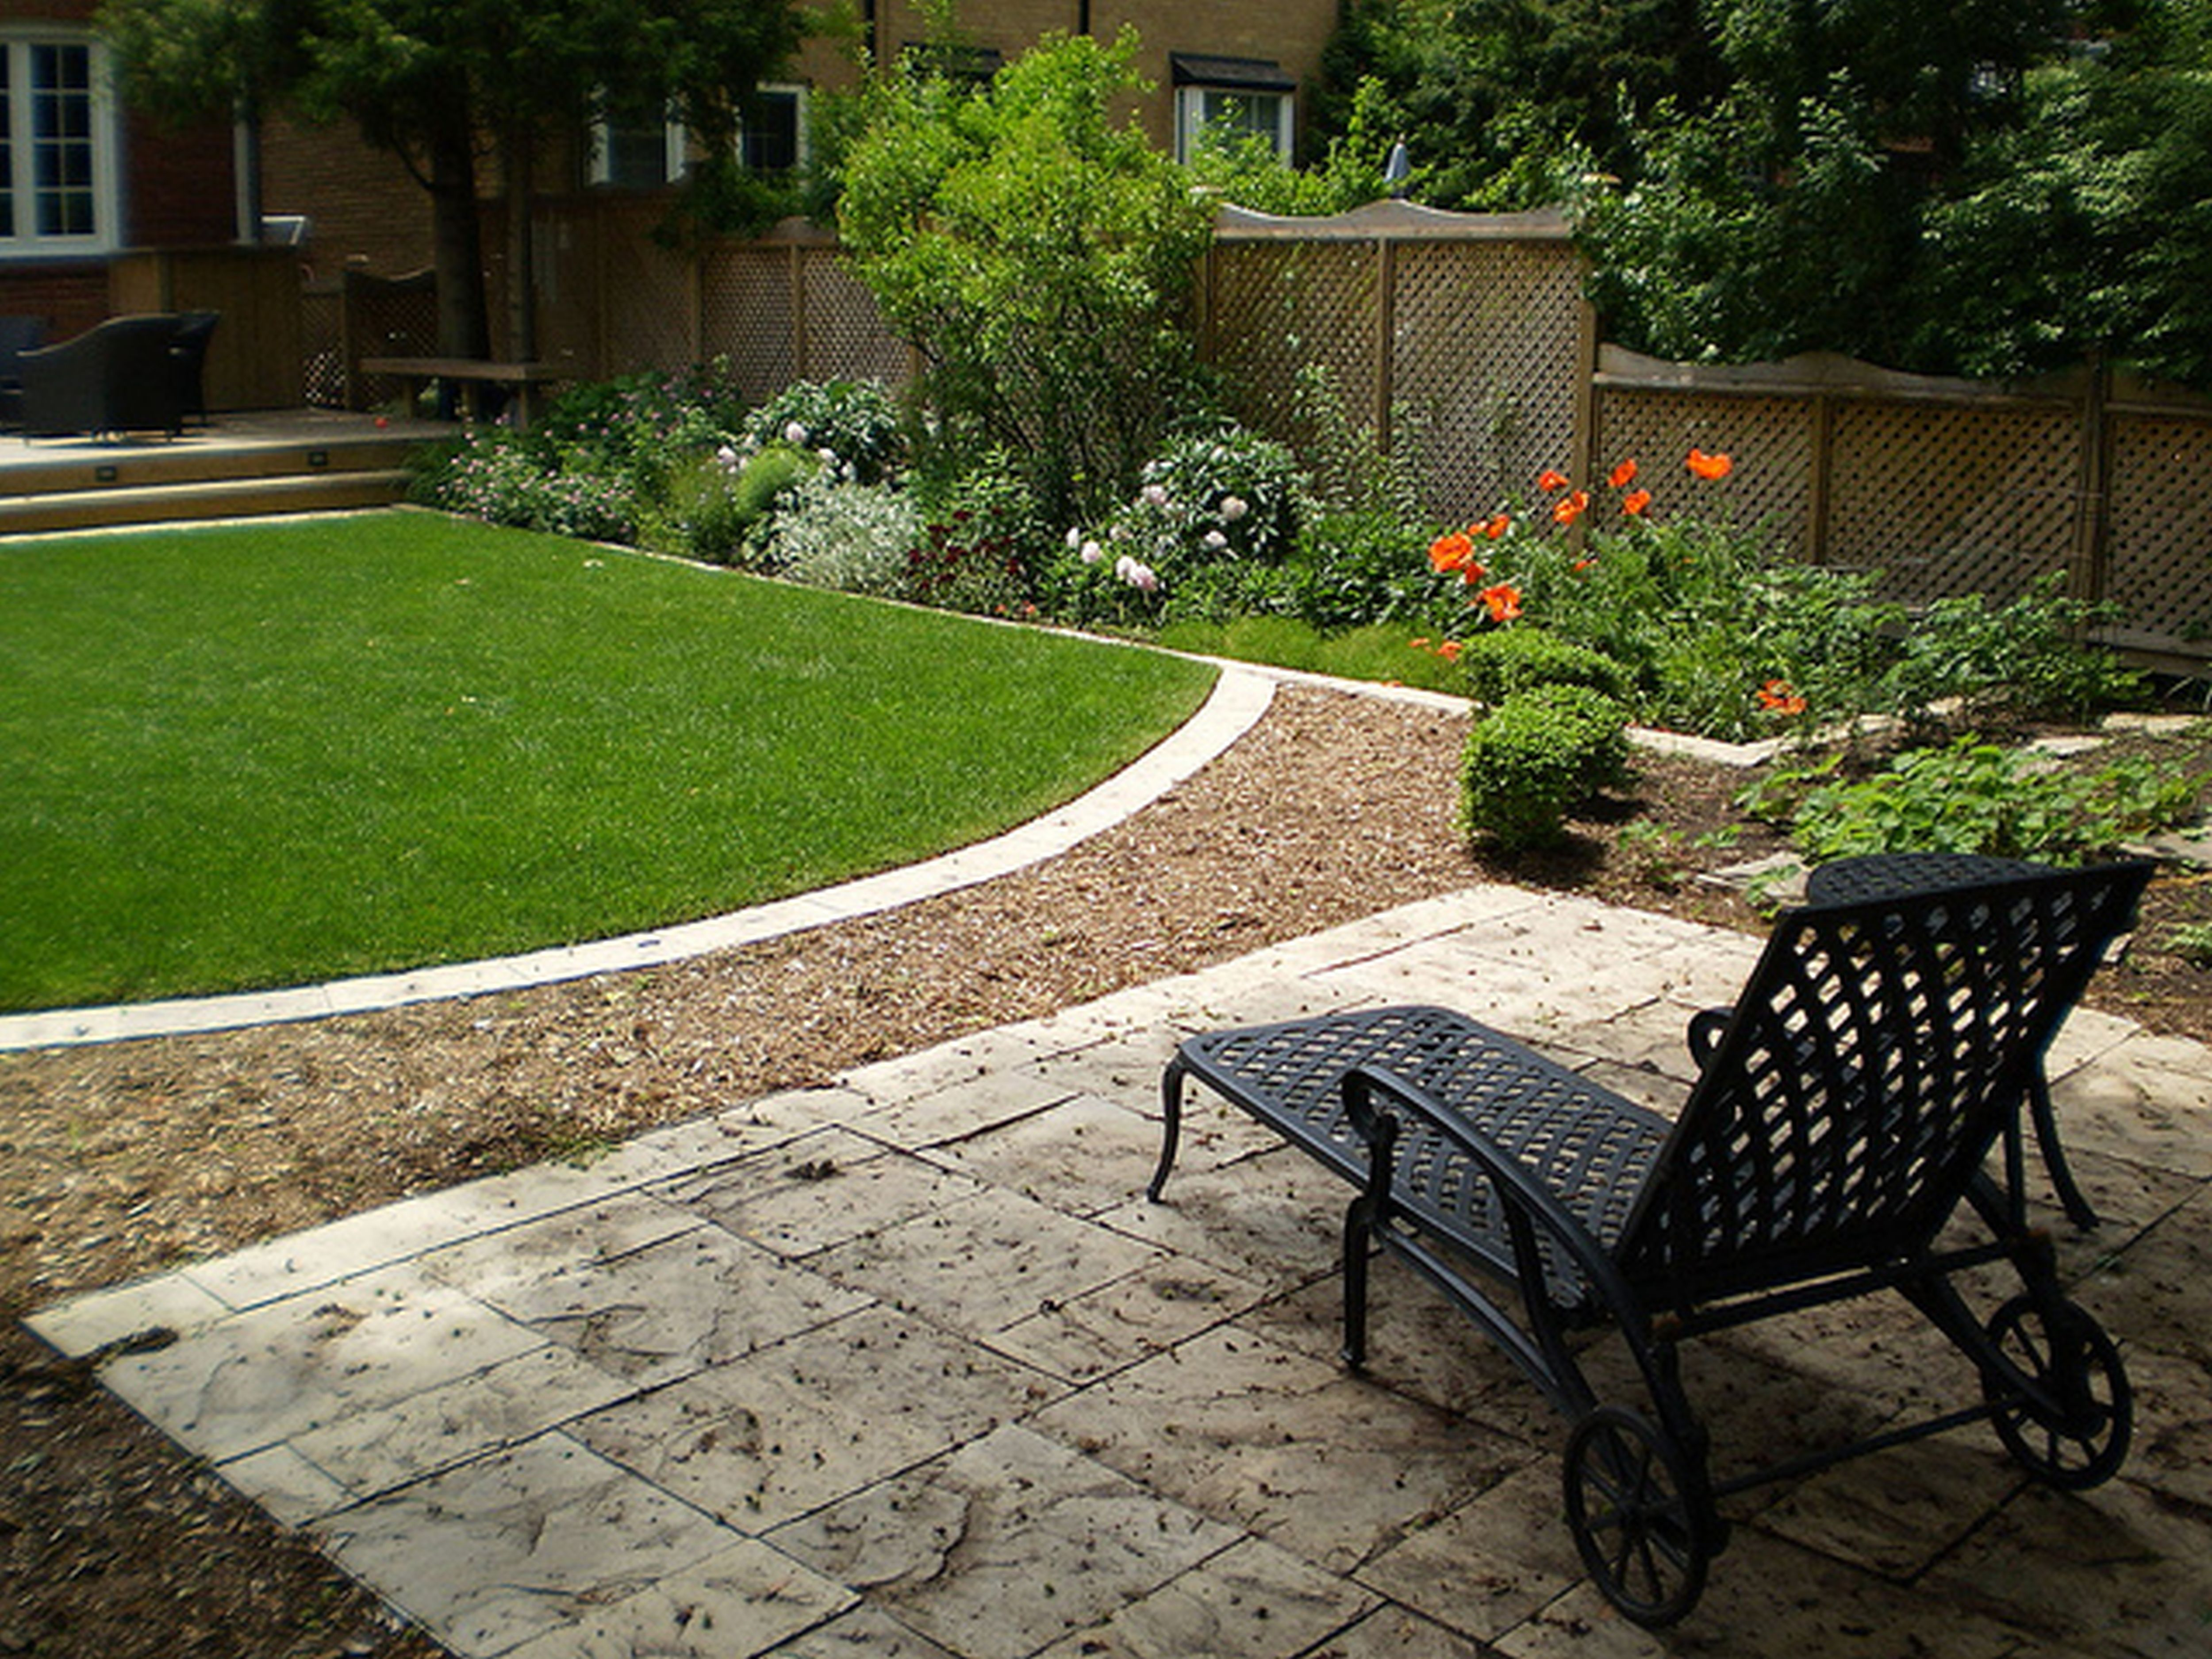 Backyard landscaping pictures for small yards home for Small backyard ideas